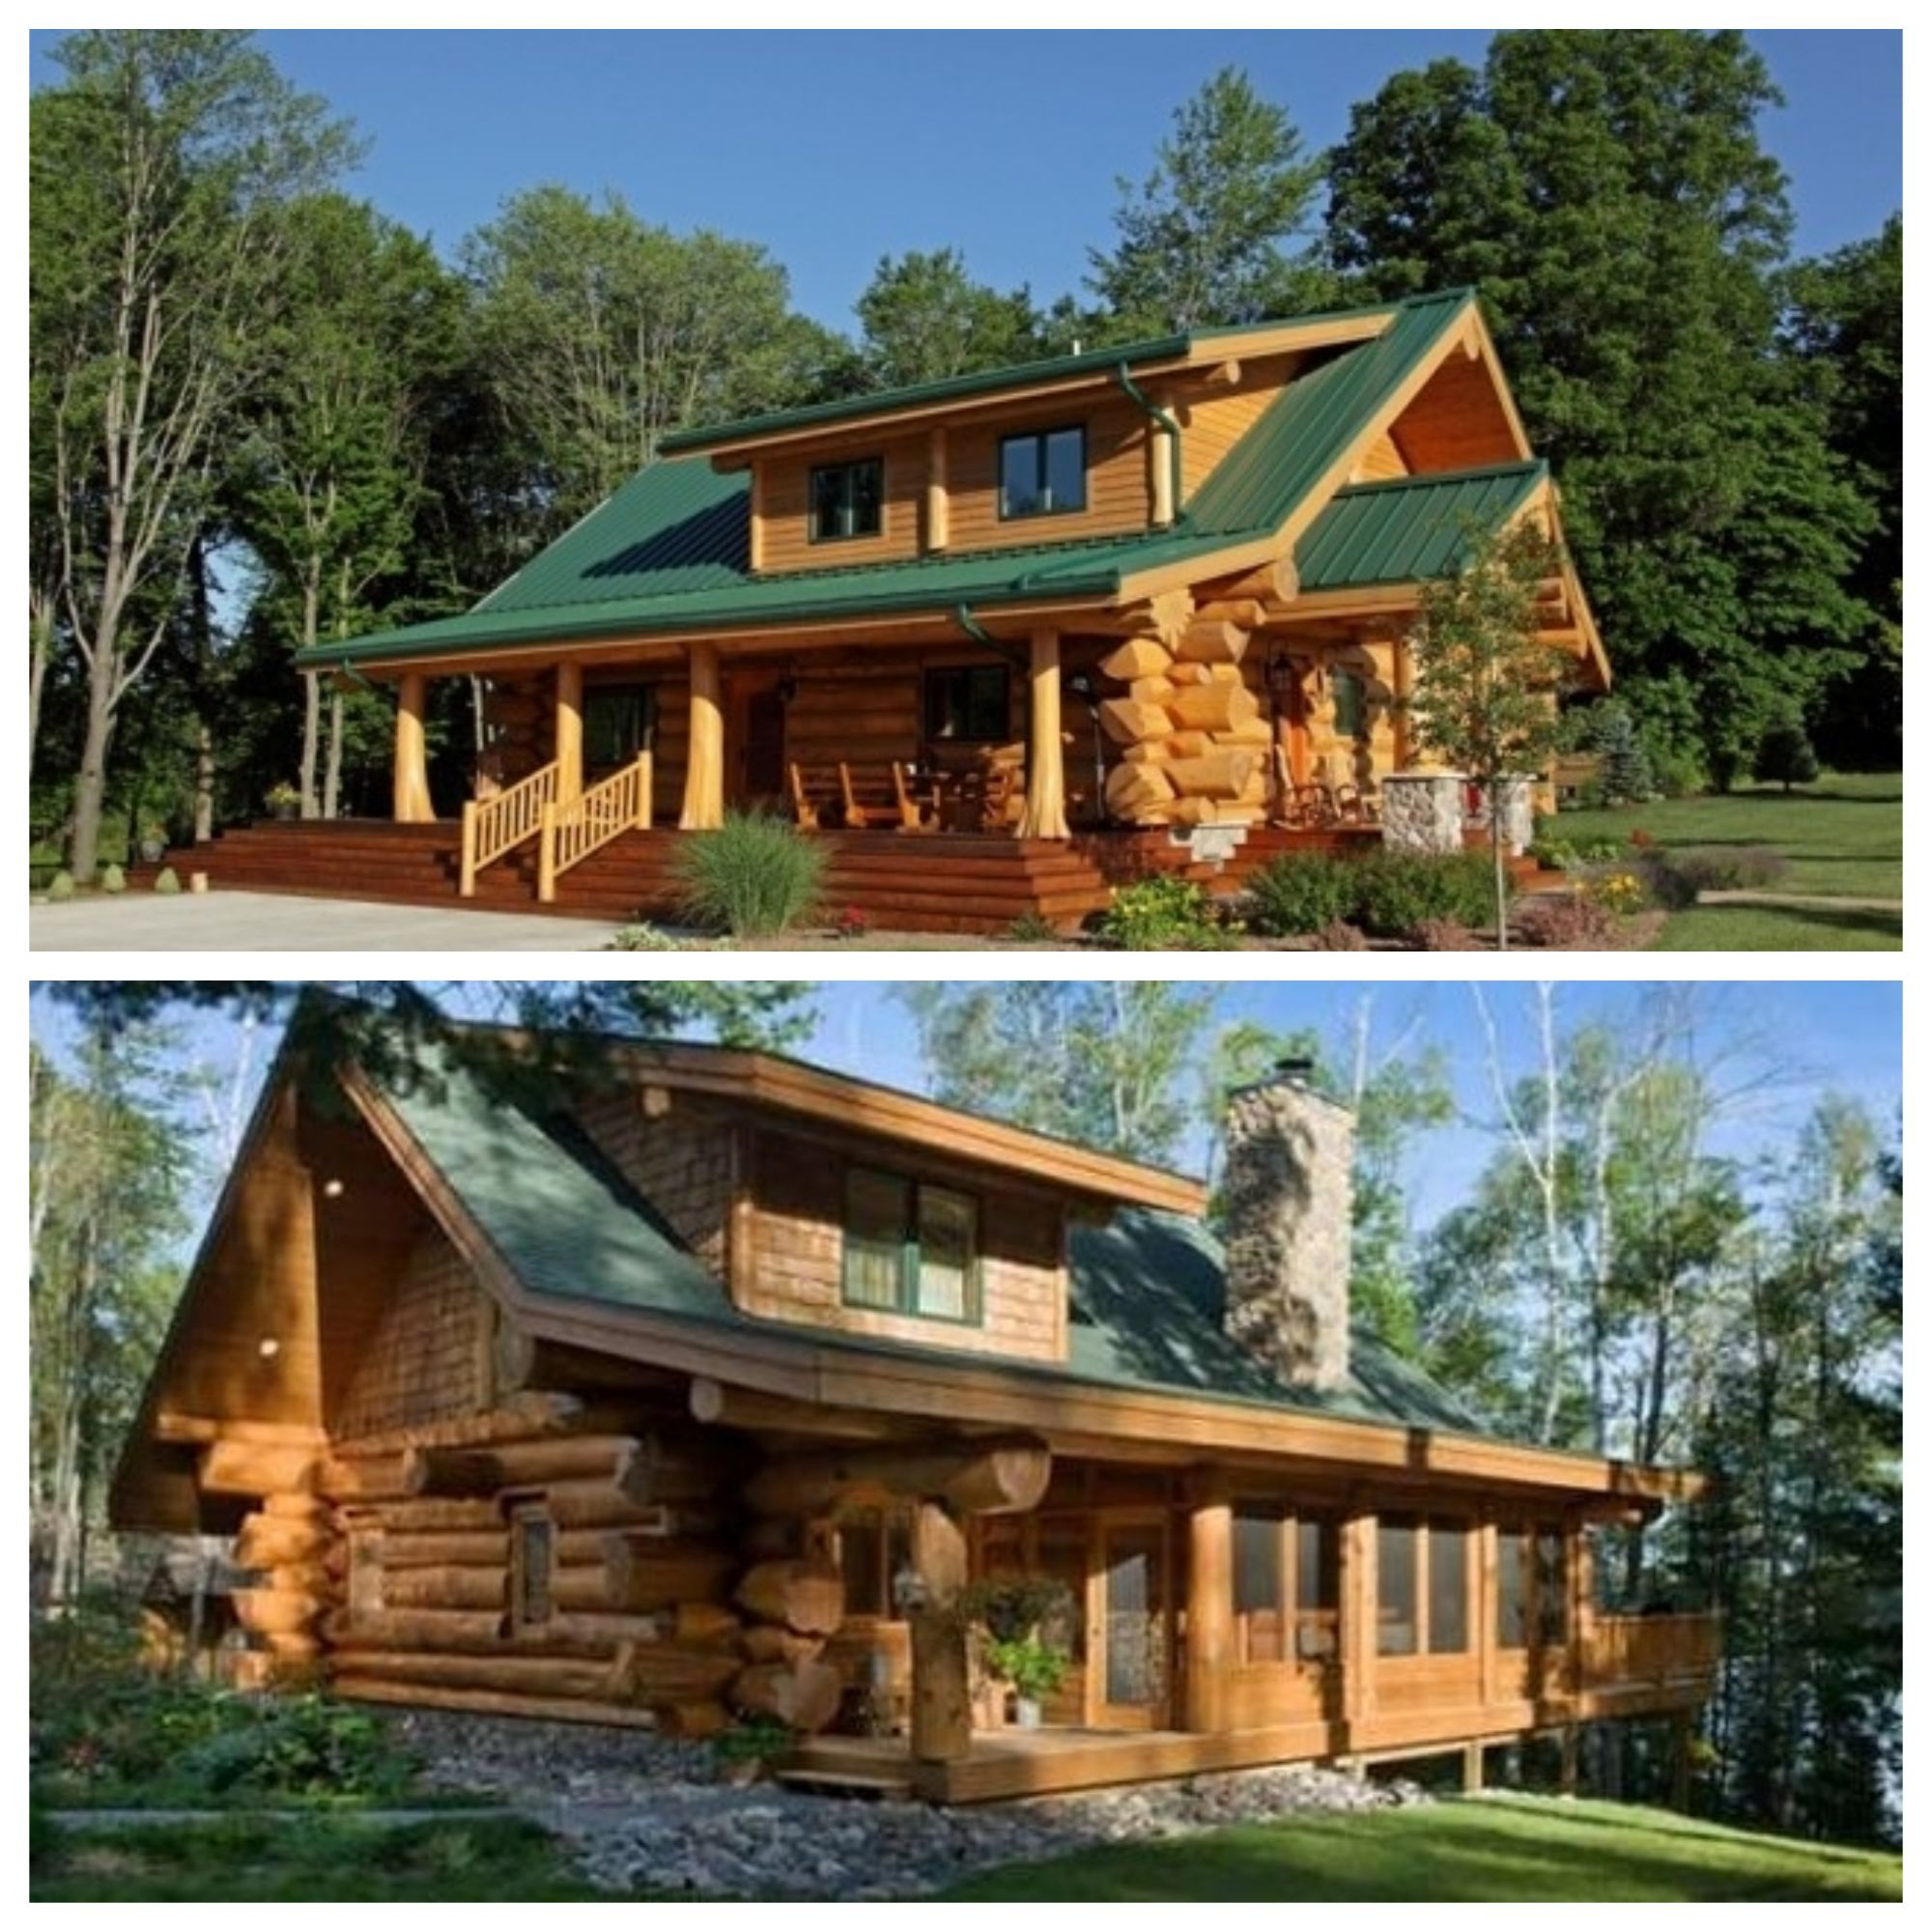 Log Home By Master Craftsman Log Homes Log Cabin Homes Storybook Cottage